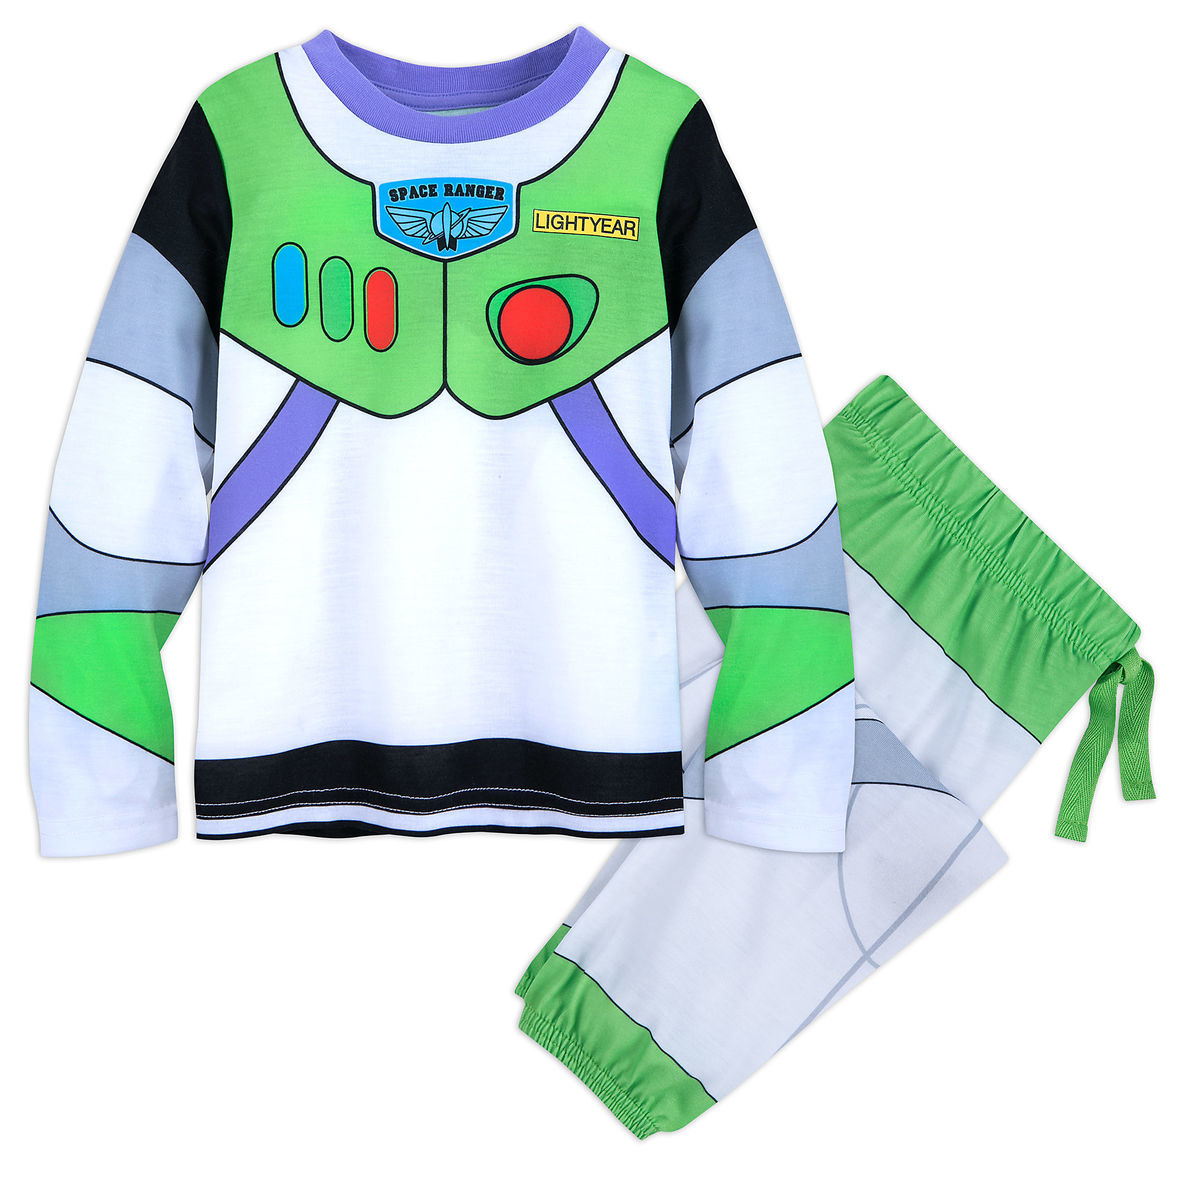 886069c23d Product Image of Buzz Lightyear Deluxe Costume PJ Set for Boys   1